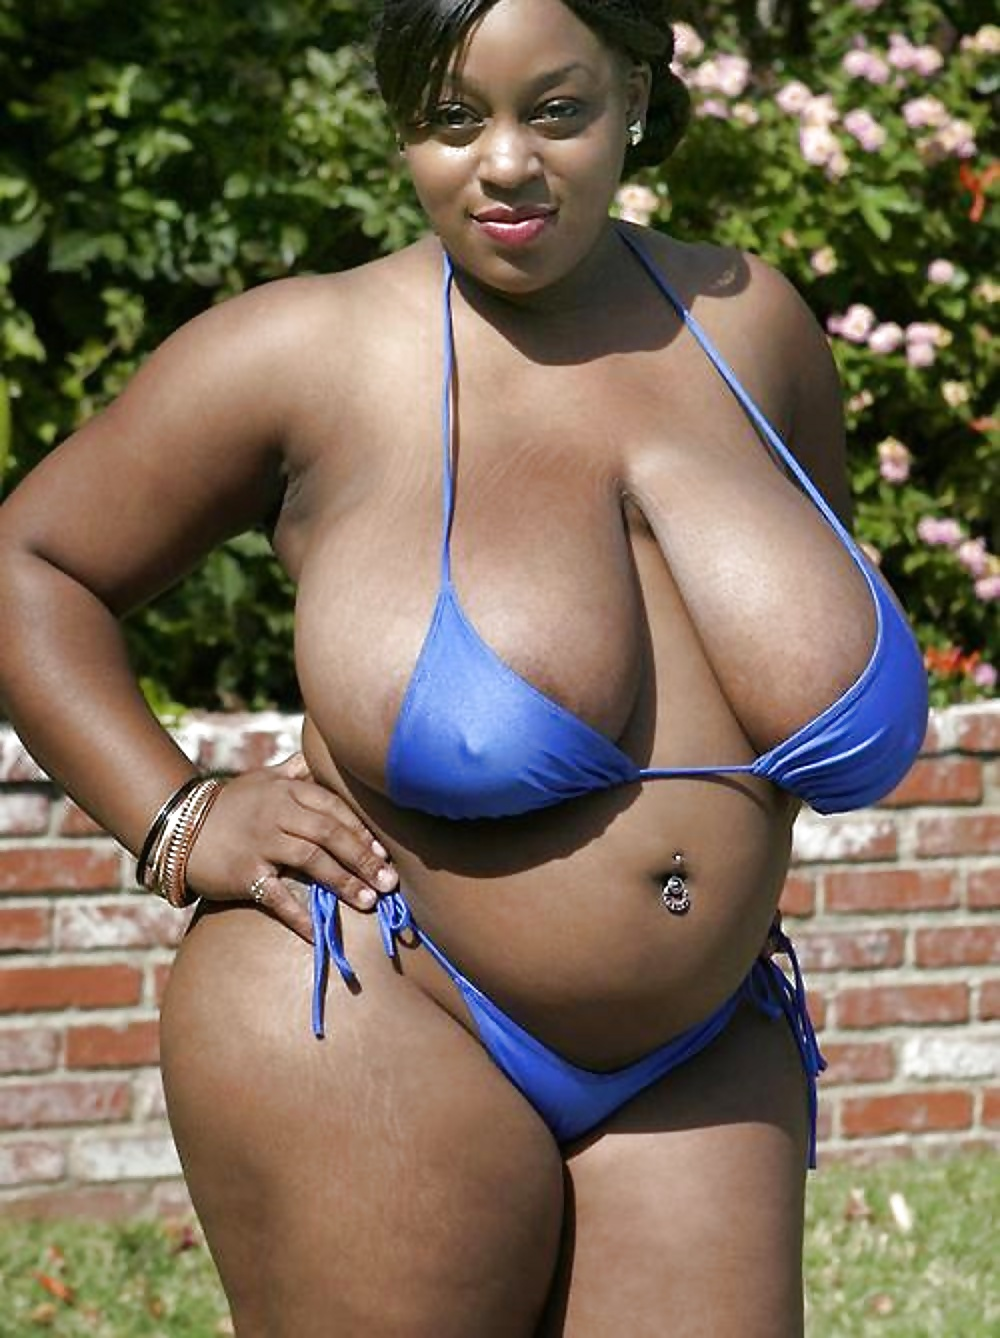 Thick athletic black girl nude